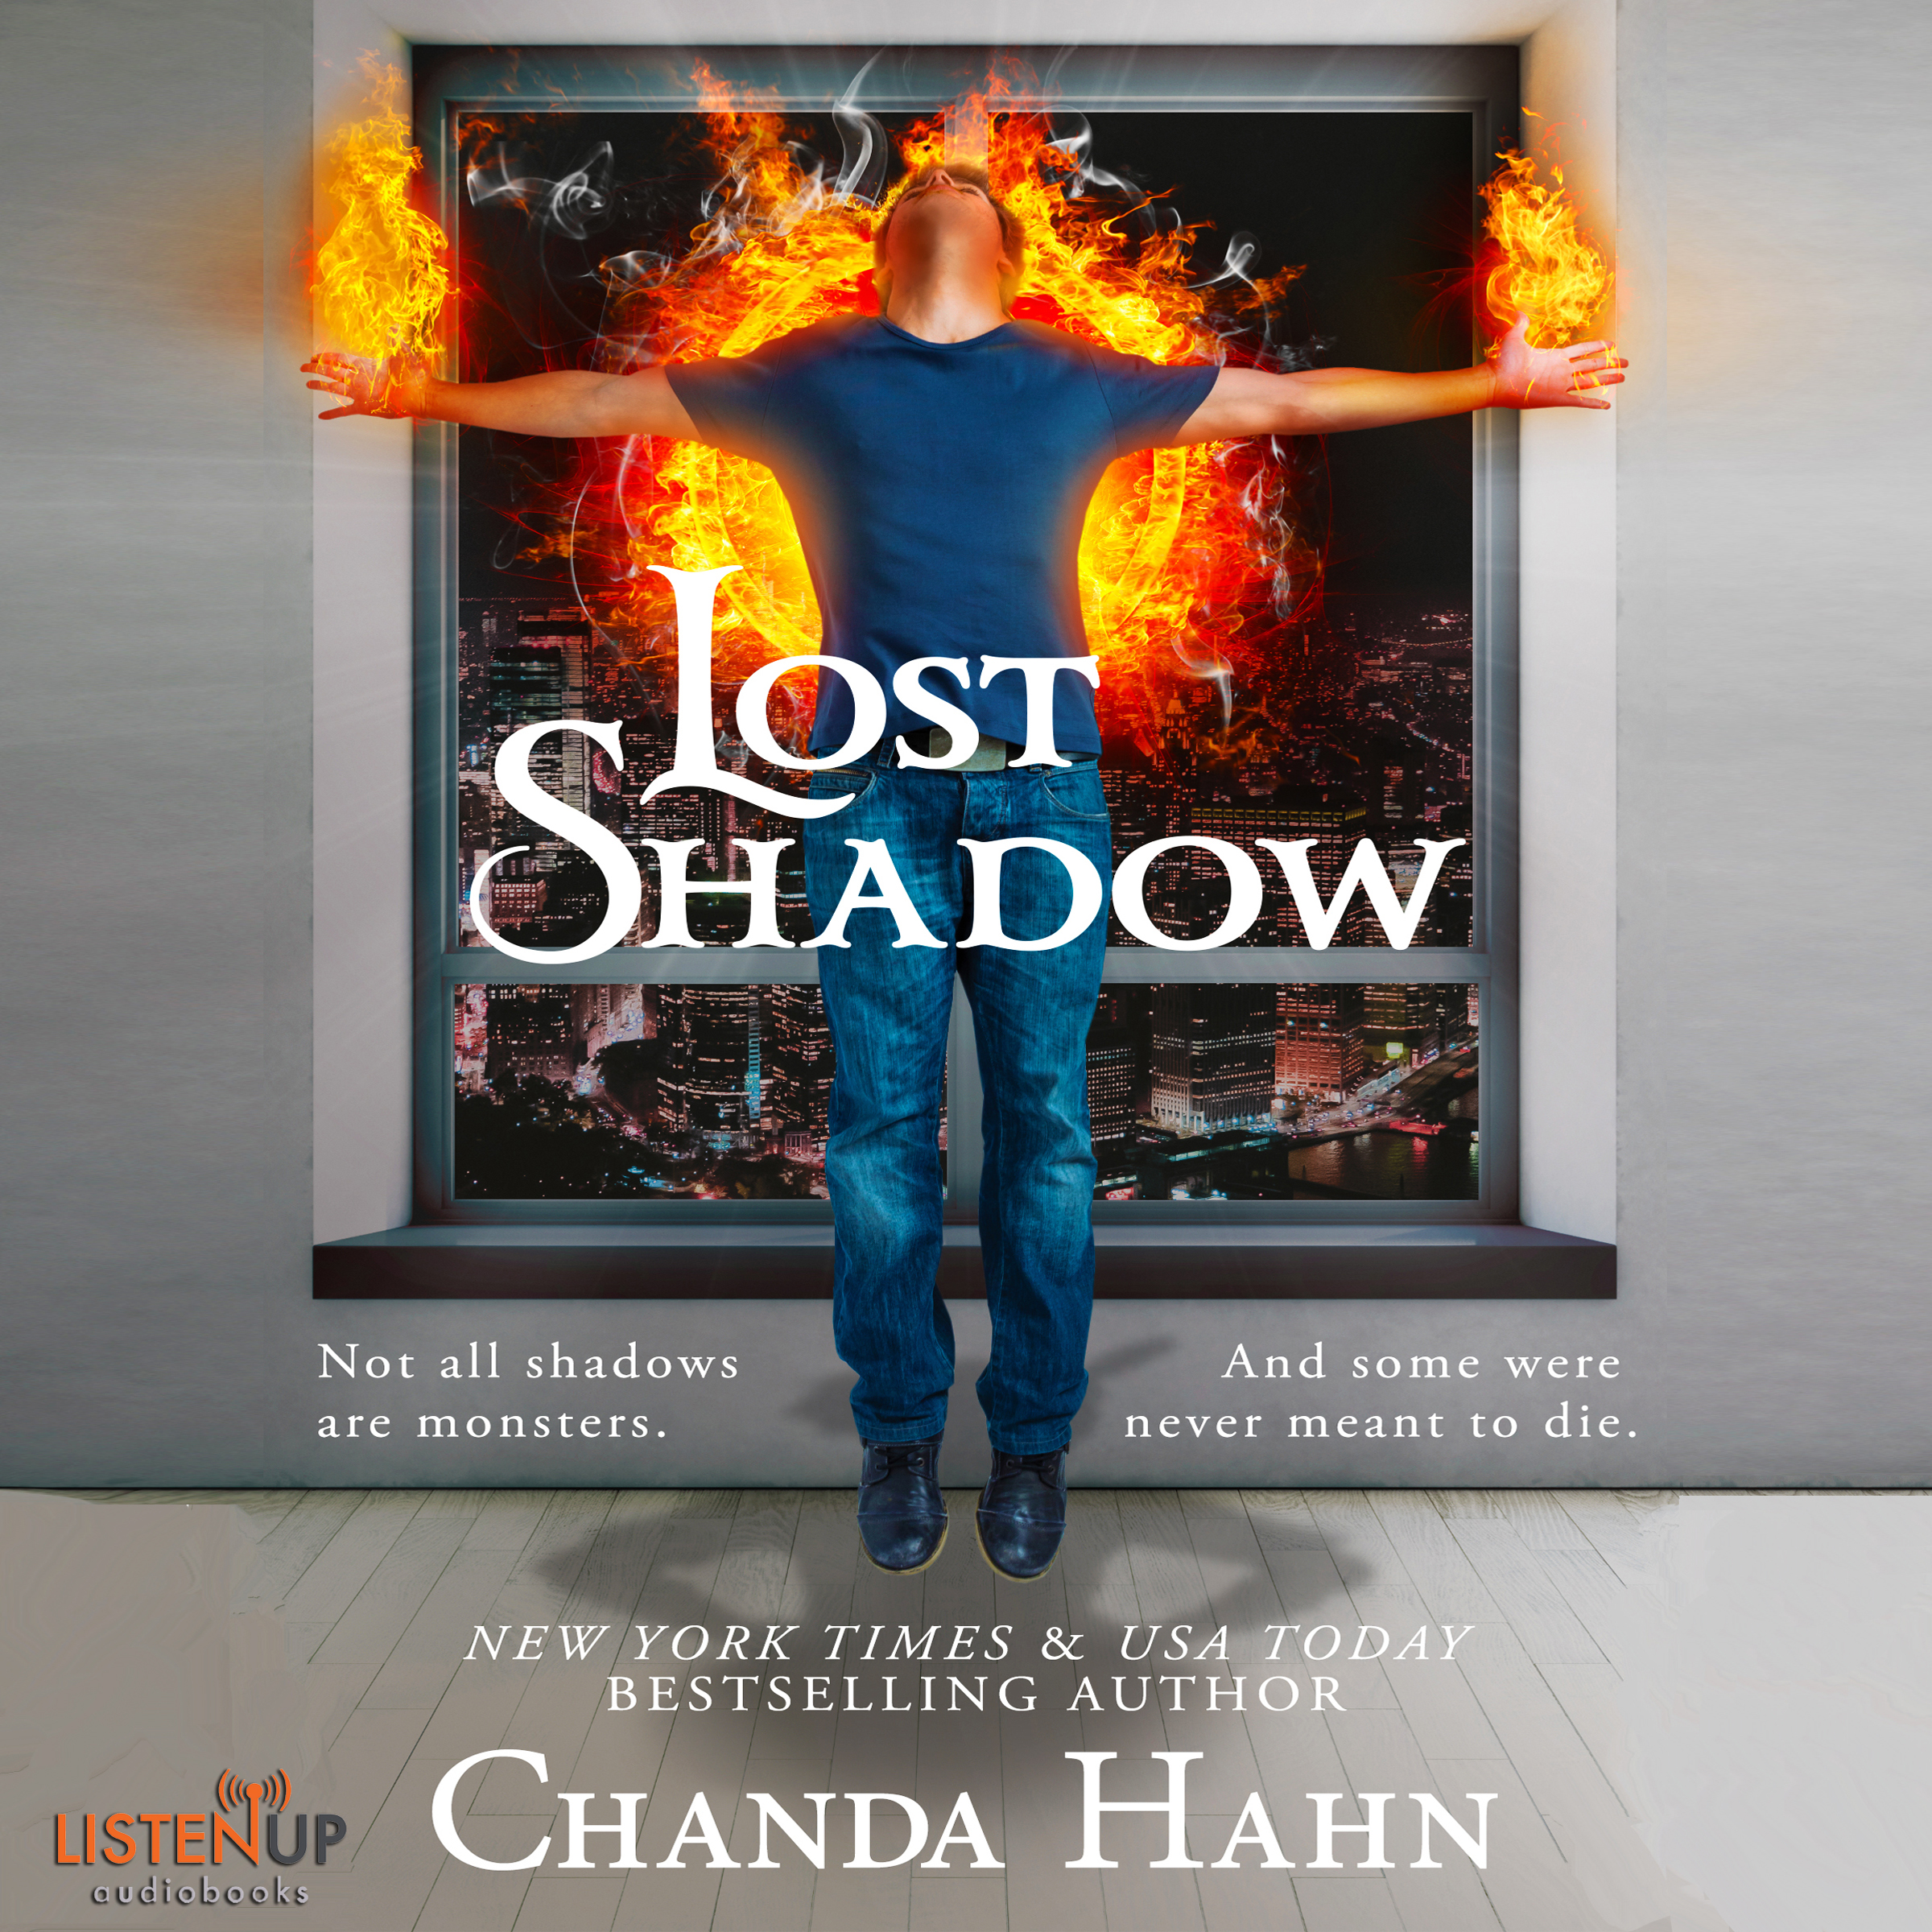 Lost Shadow cover image